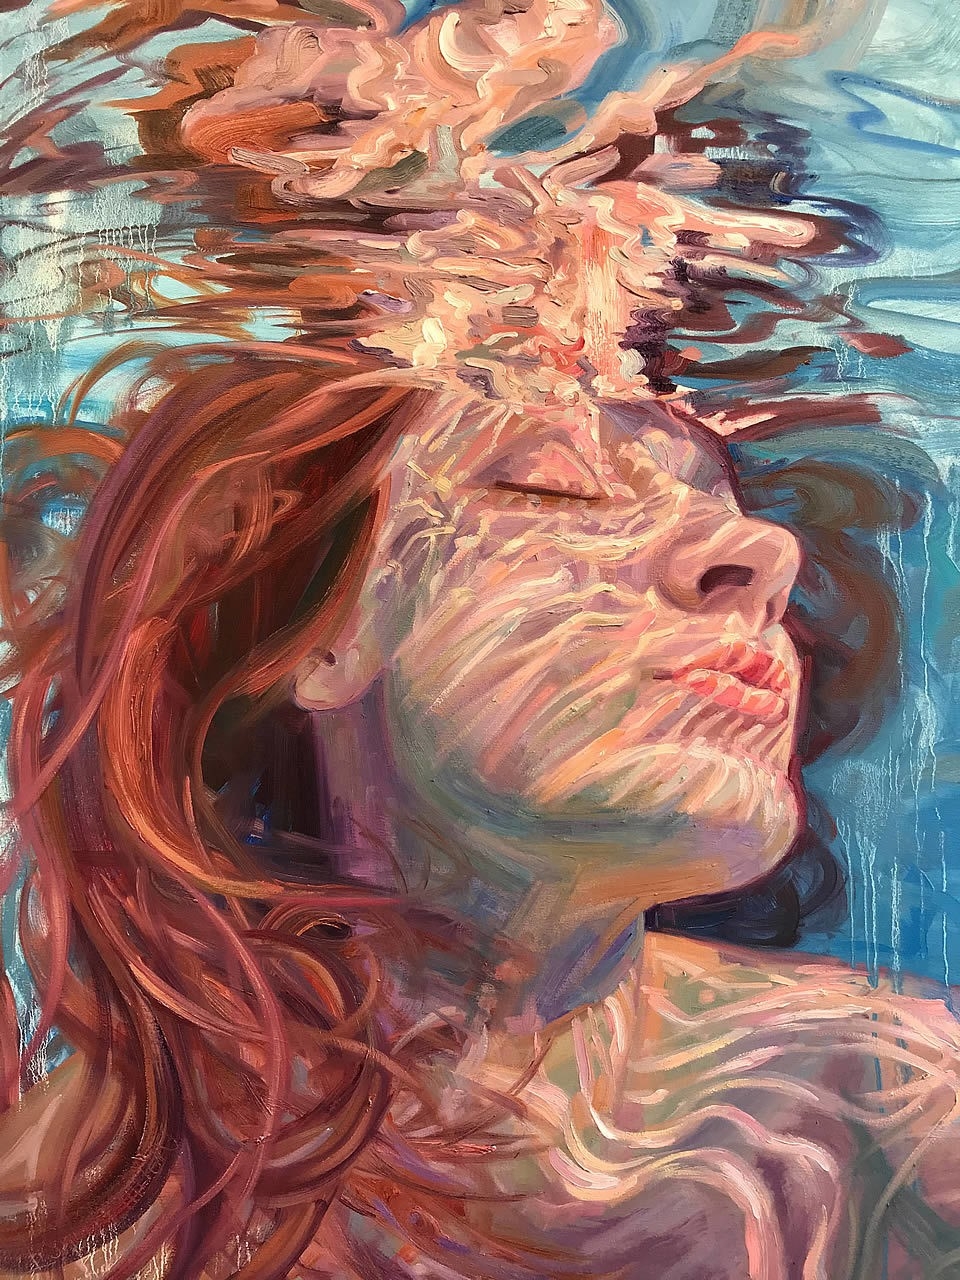 a woman underwater